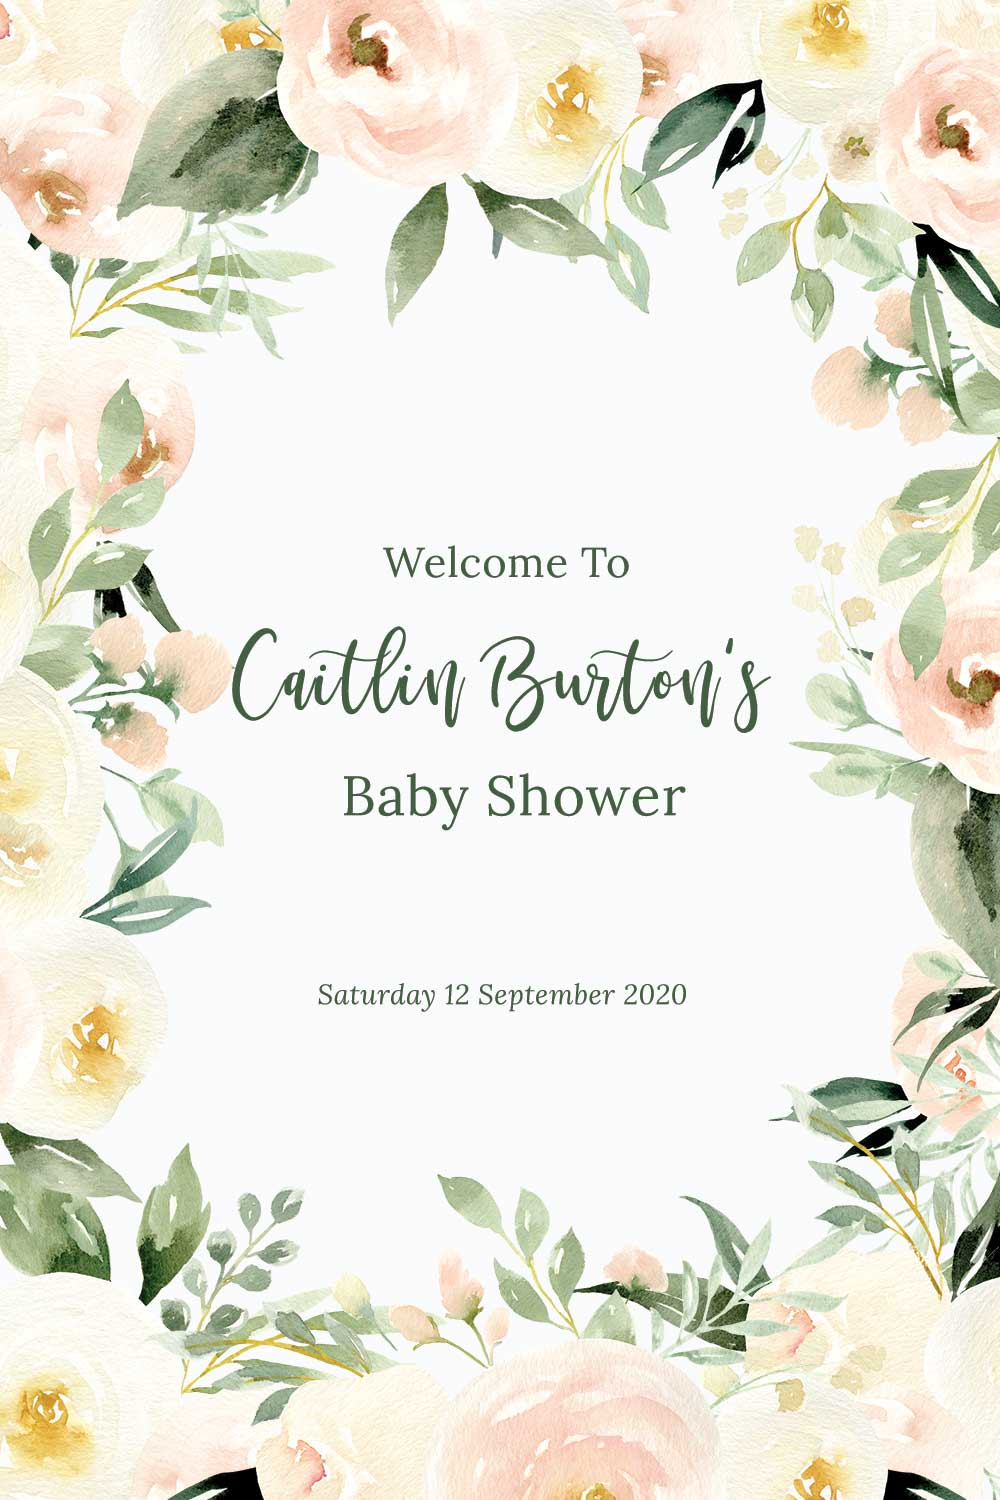 Baby Shower Welcome signs - Blush Theme